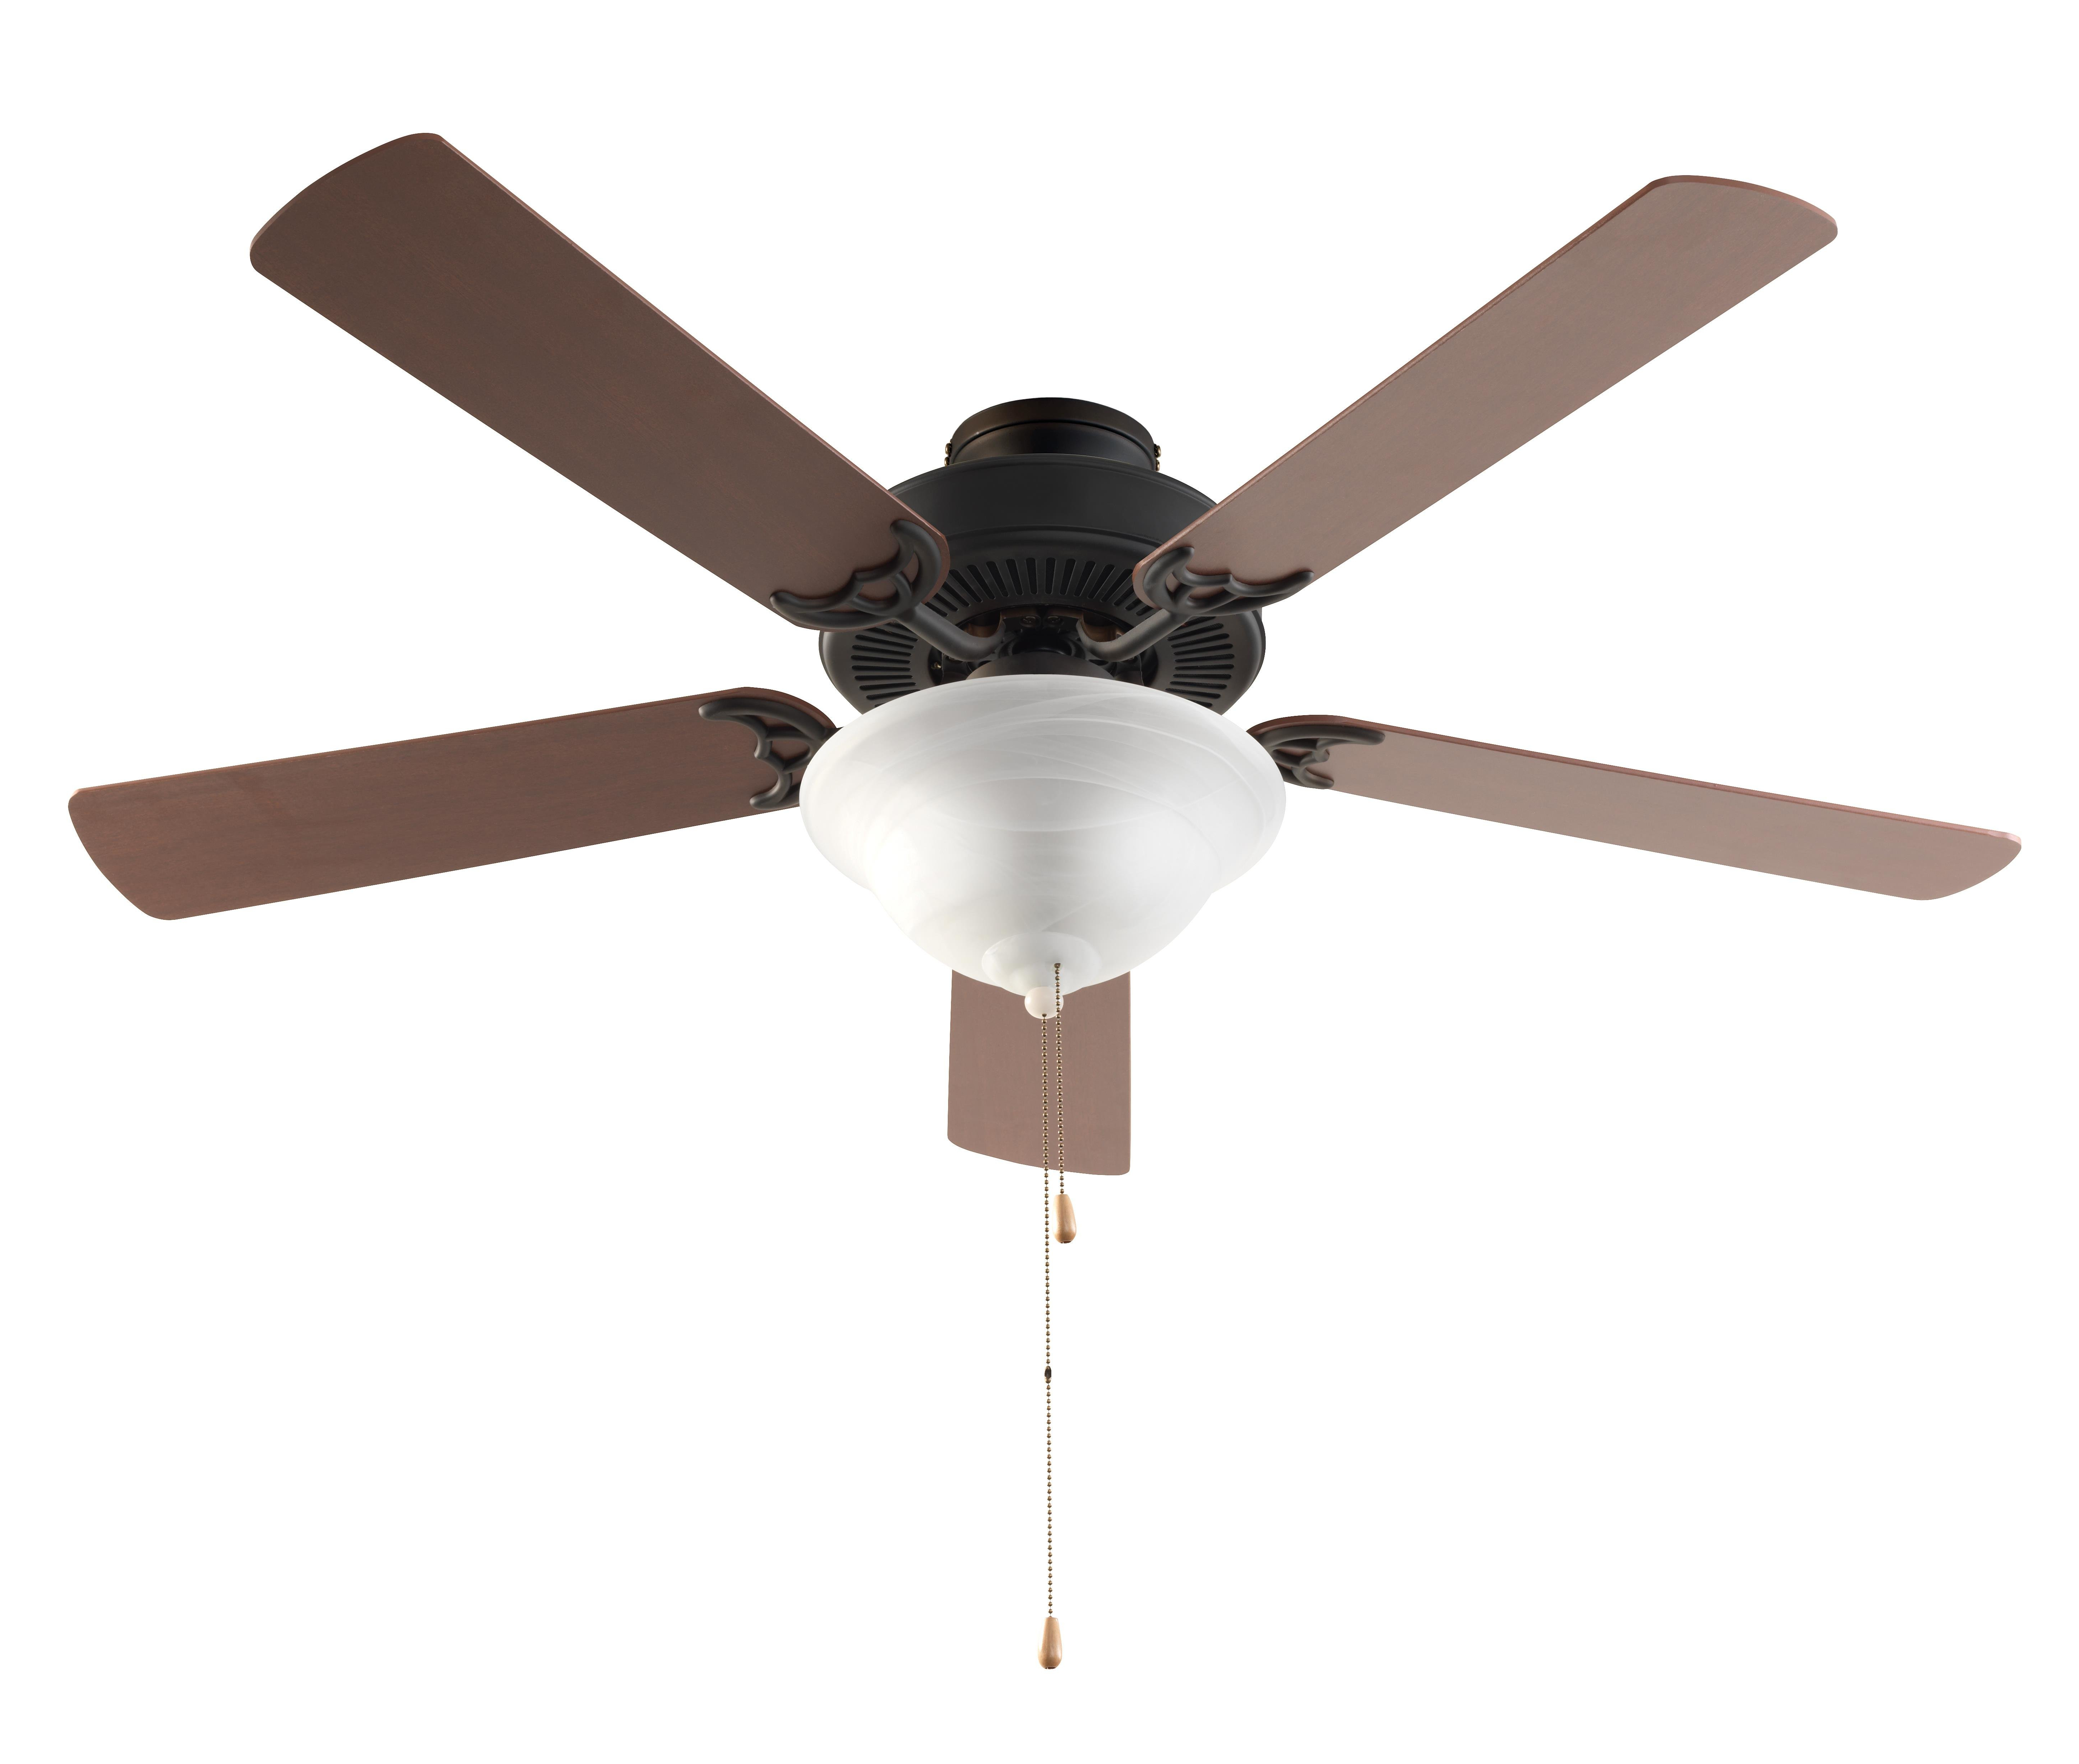 Well Liked Mattias 5 Blade Ceiling Fans Throughout Hamlett 5 Blade Ceiling Fan, Light Kit Included (View 4 of 20)